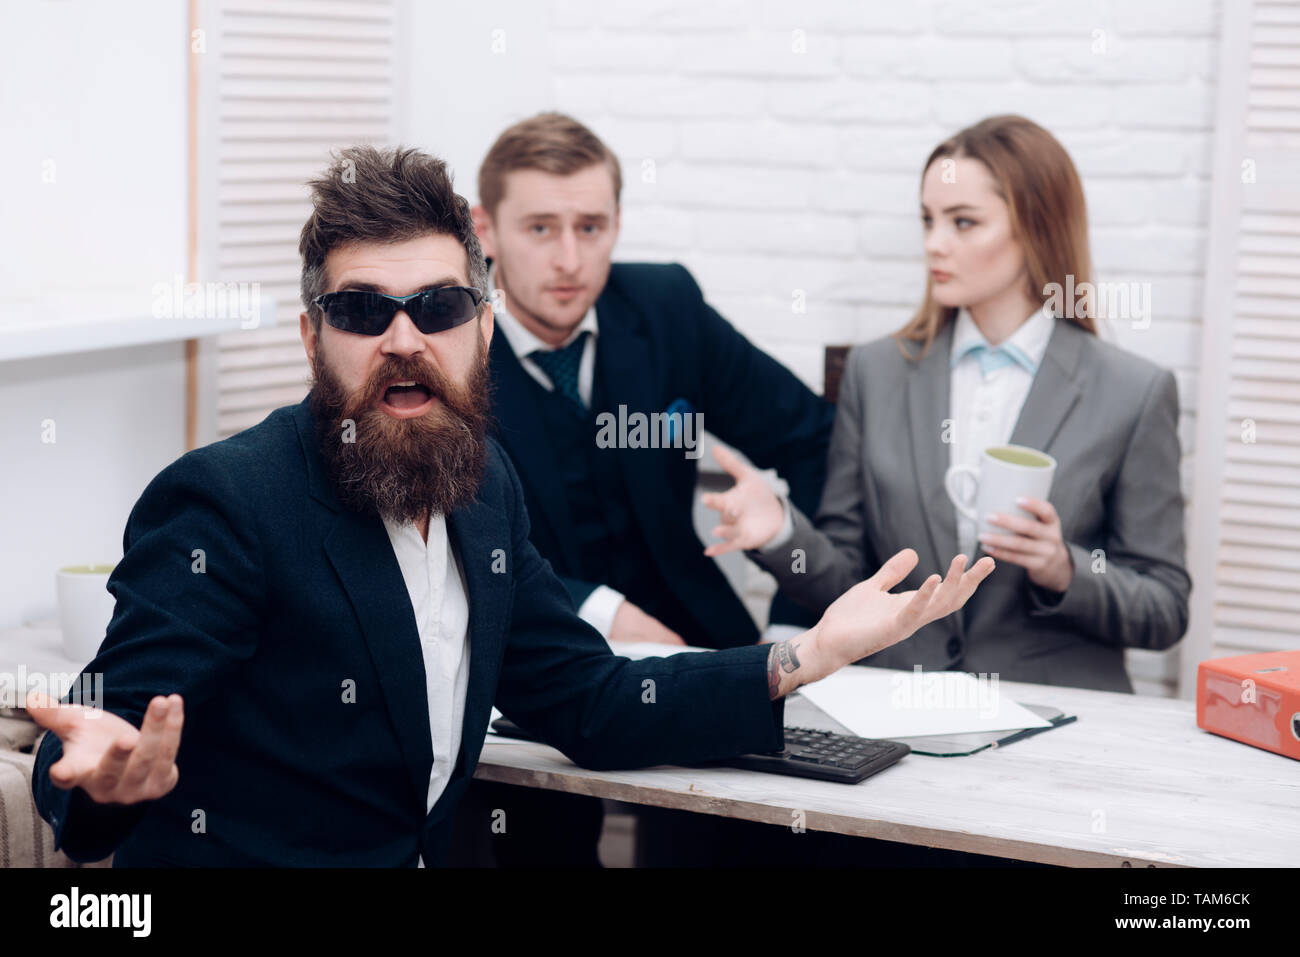 Business partners or businessman at meeting, office background. Startup concept. Man with beard and glasses proposes extraordinary startup idea - Stock Image